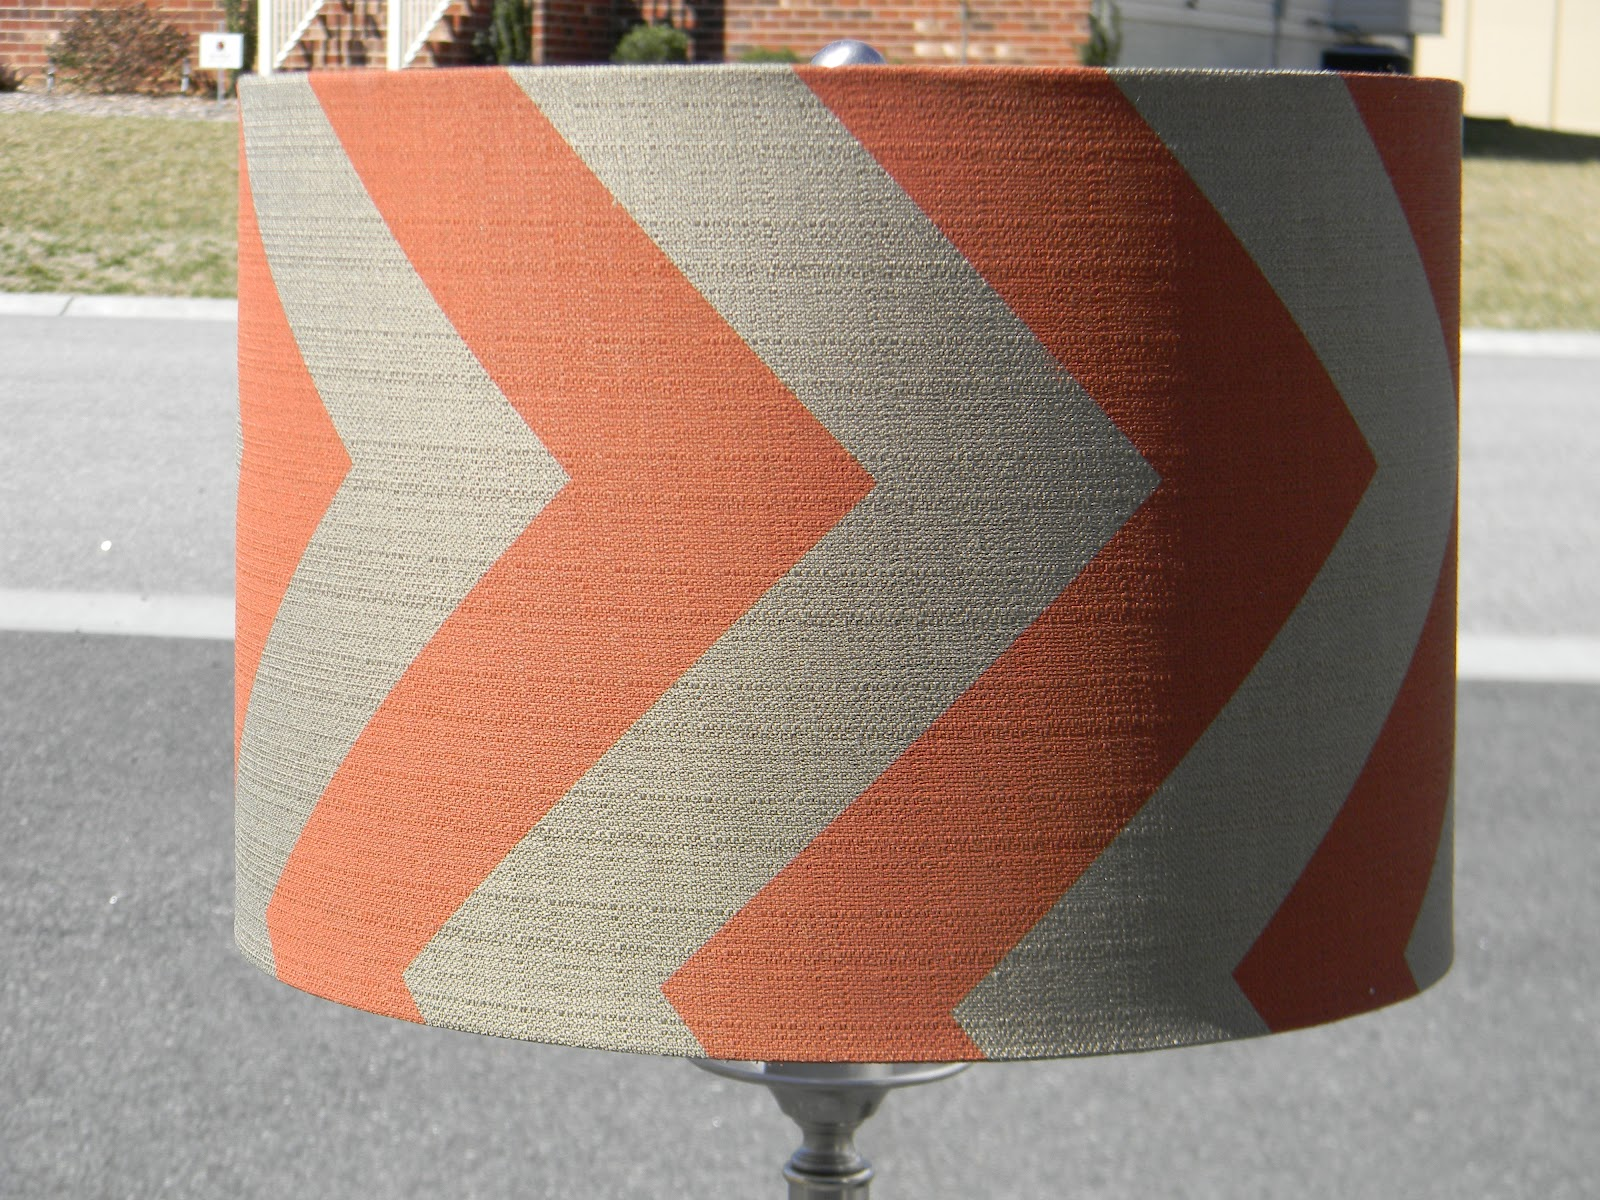 Seaside interiors thrift store lamps before and after